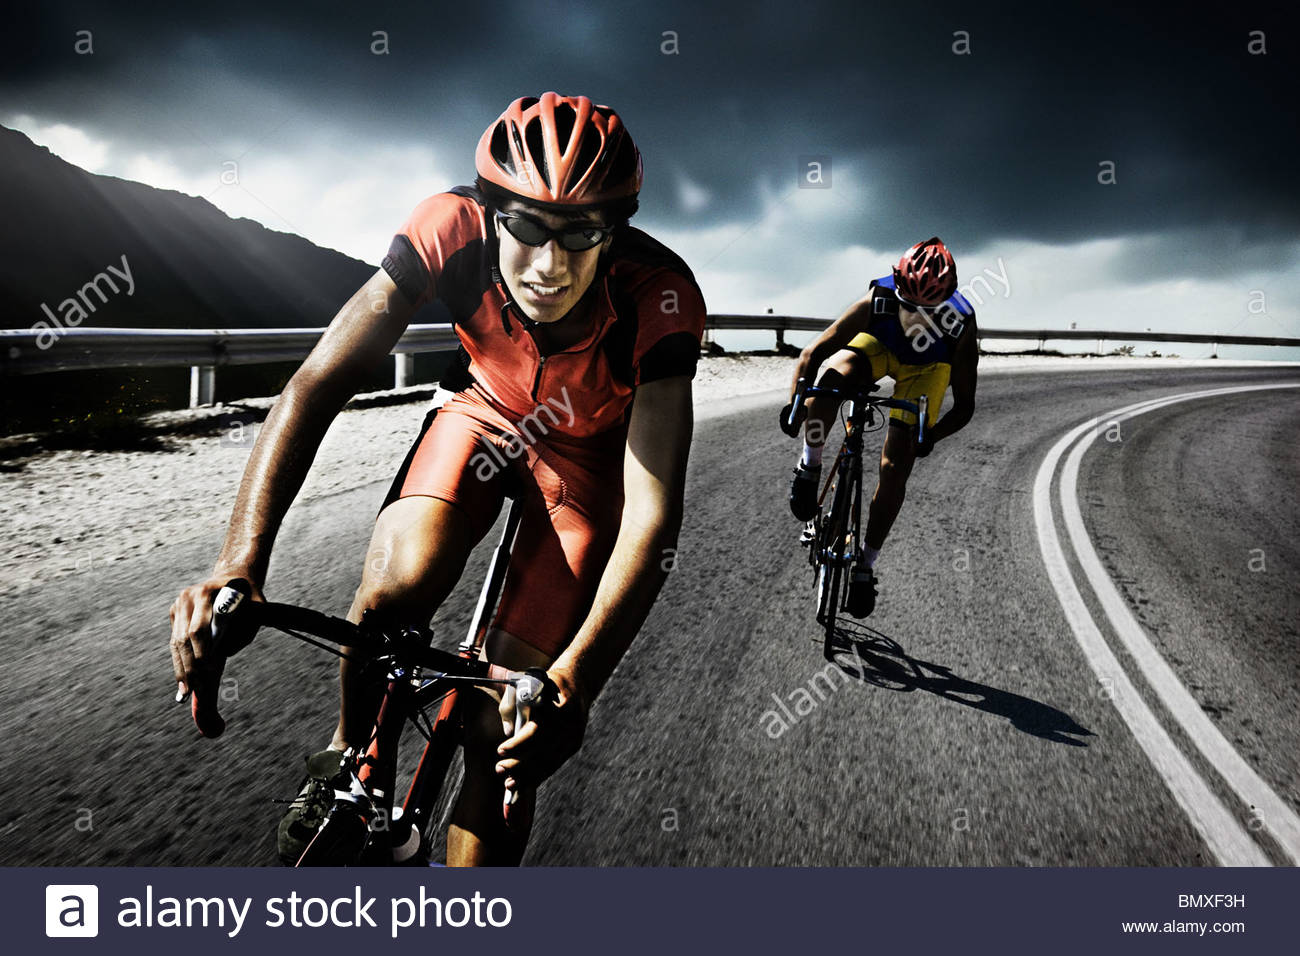 Racing cyclists on road - Stock Image